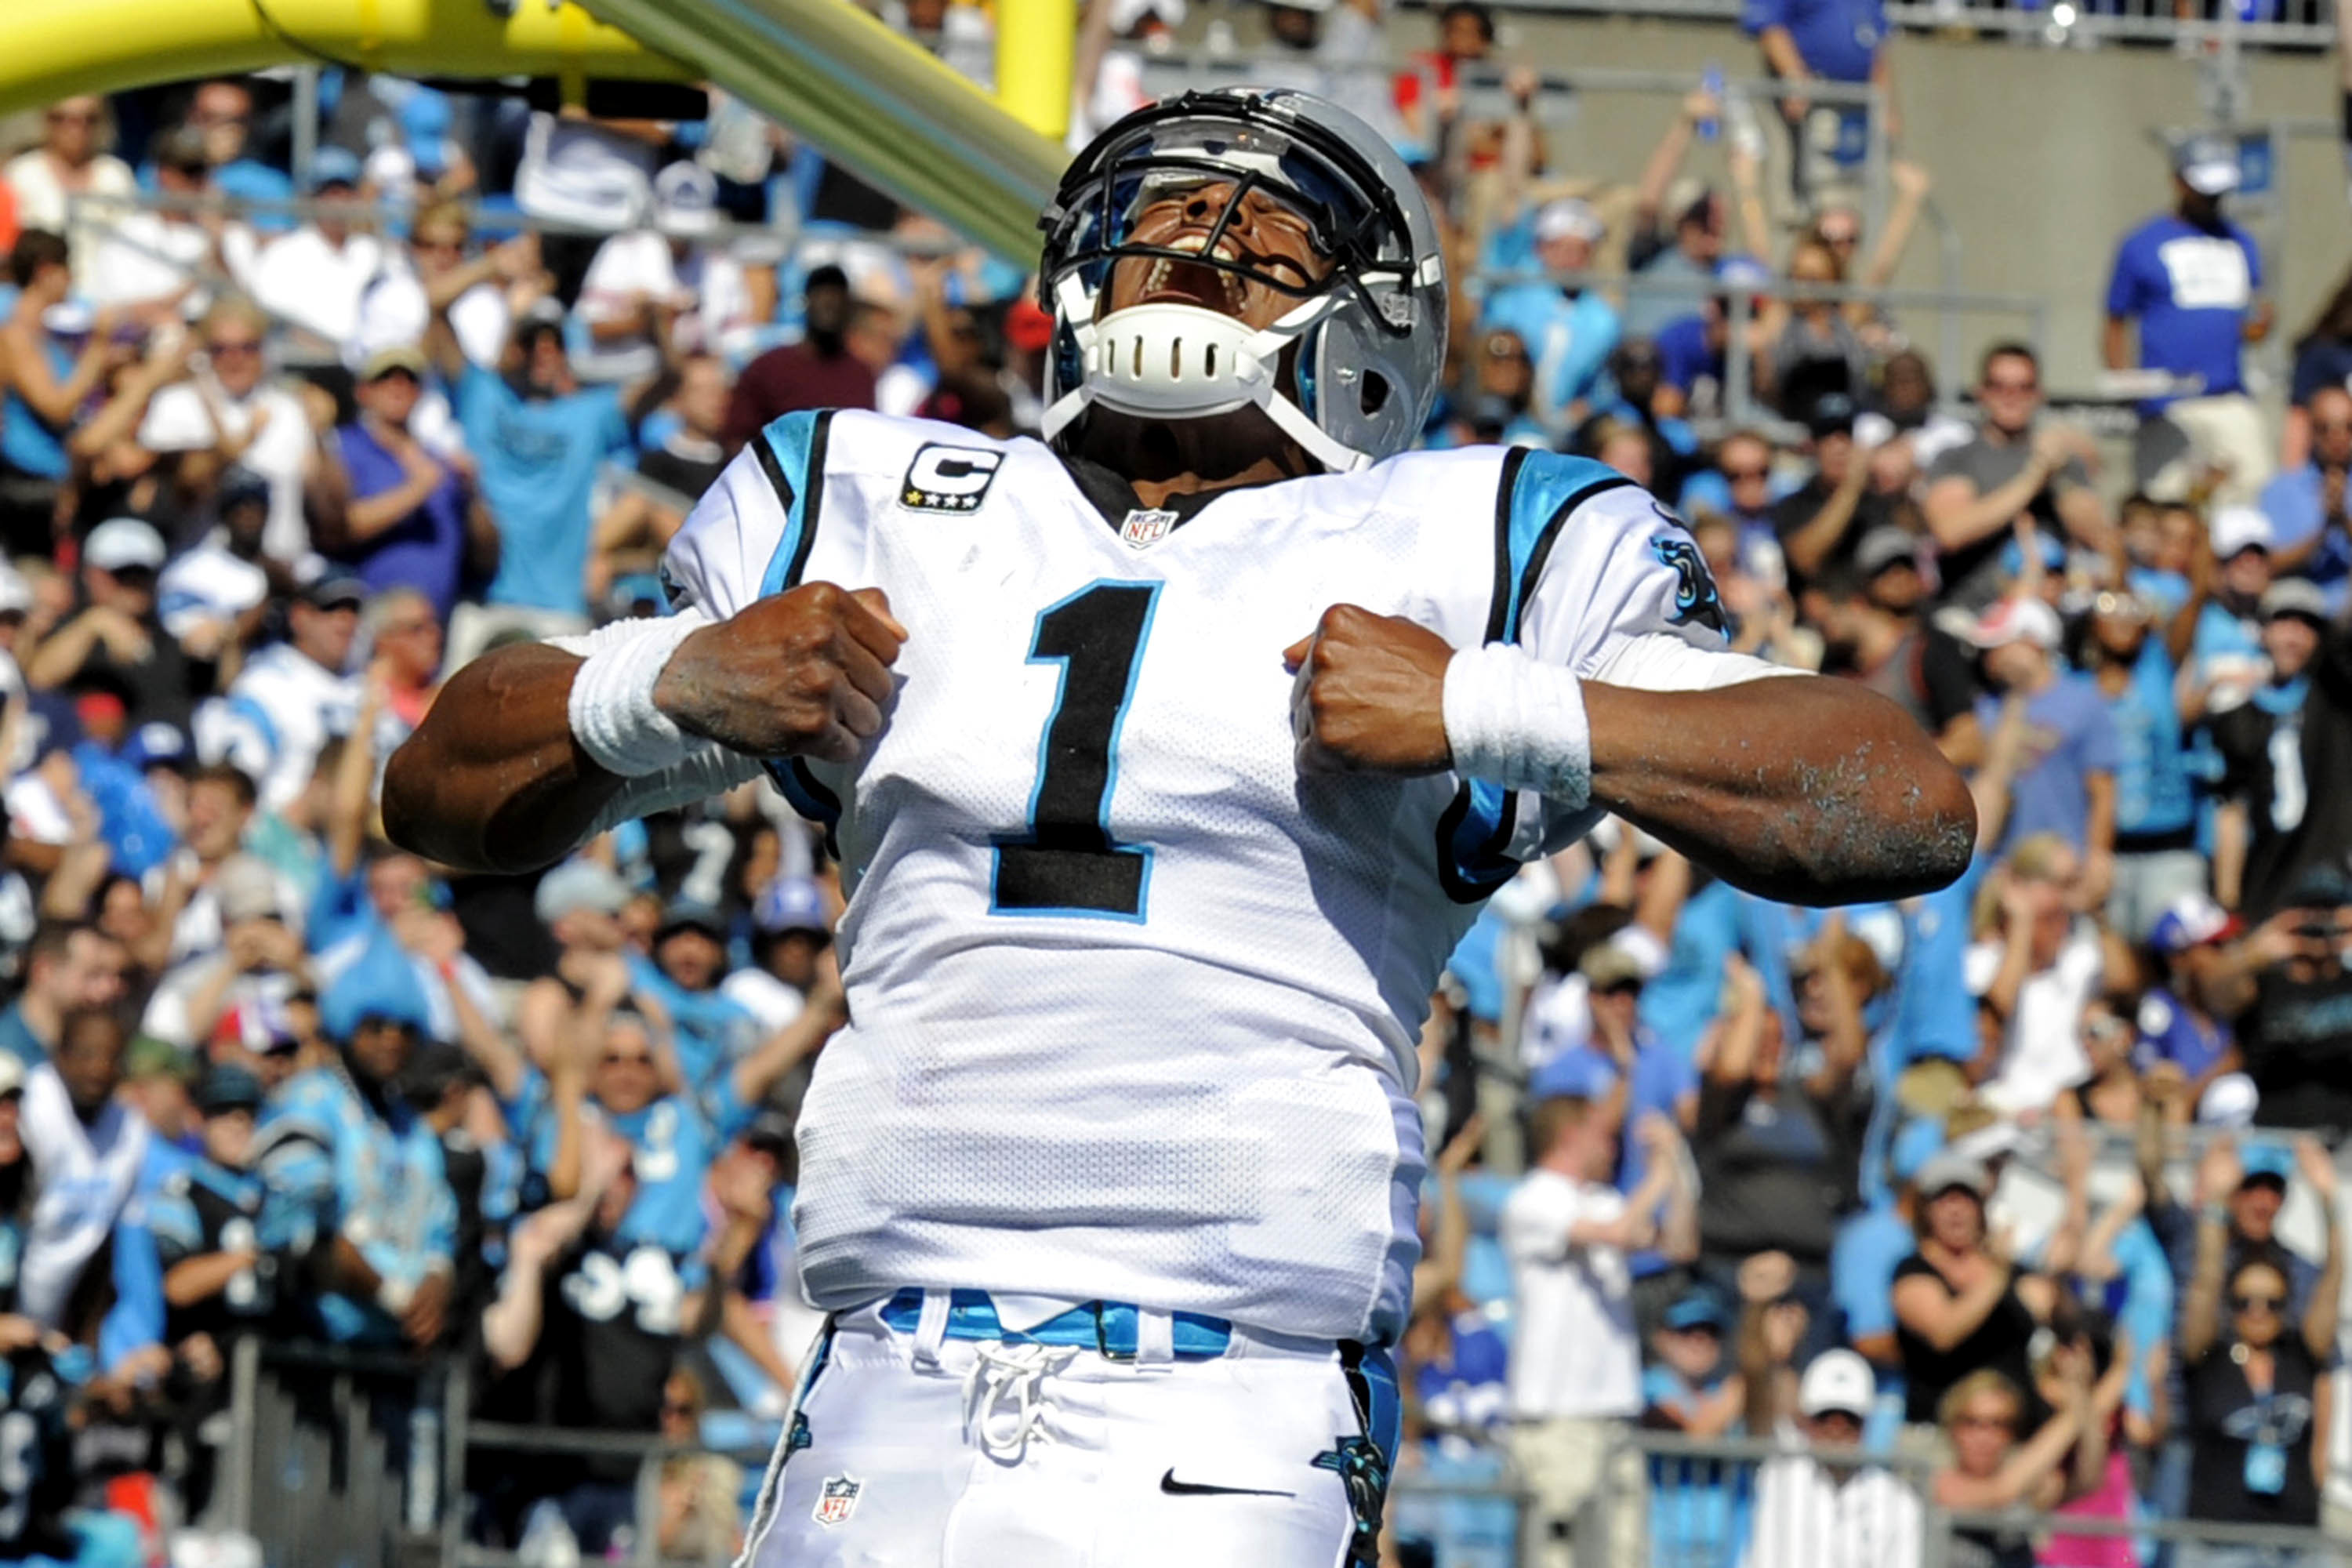 e20227ef9f1 3000x2000 Cam Newton Touchdown Celebration Superman Cam newton celebrates a  td .